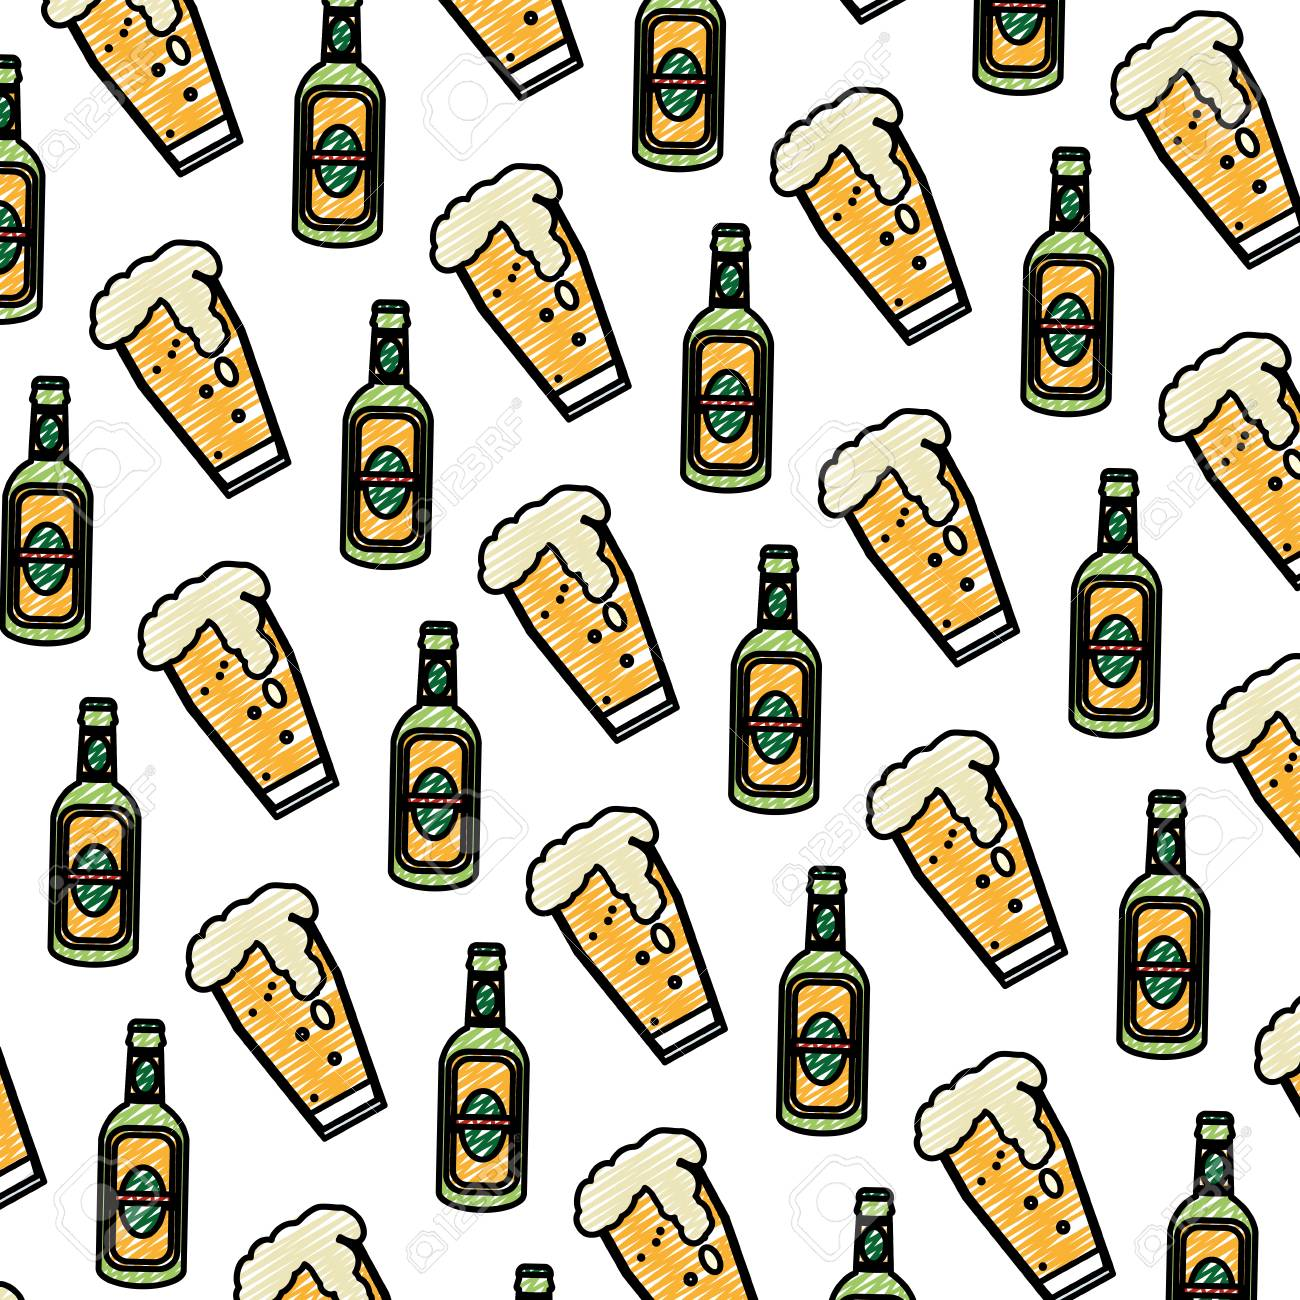 Doodle Schnapps Liquor Bottle And Beer Glass Background Vector